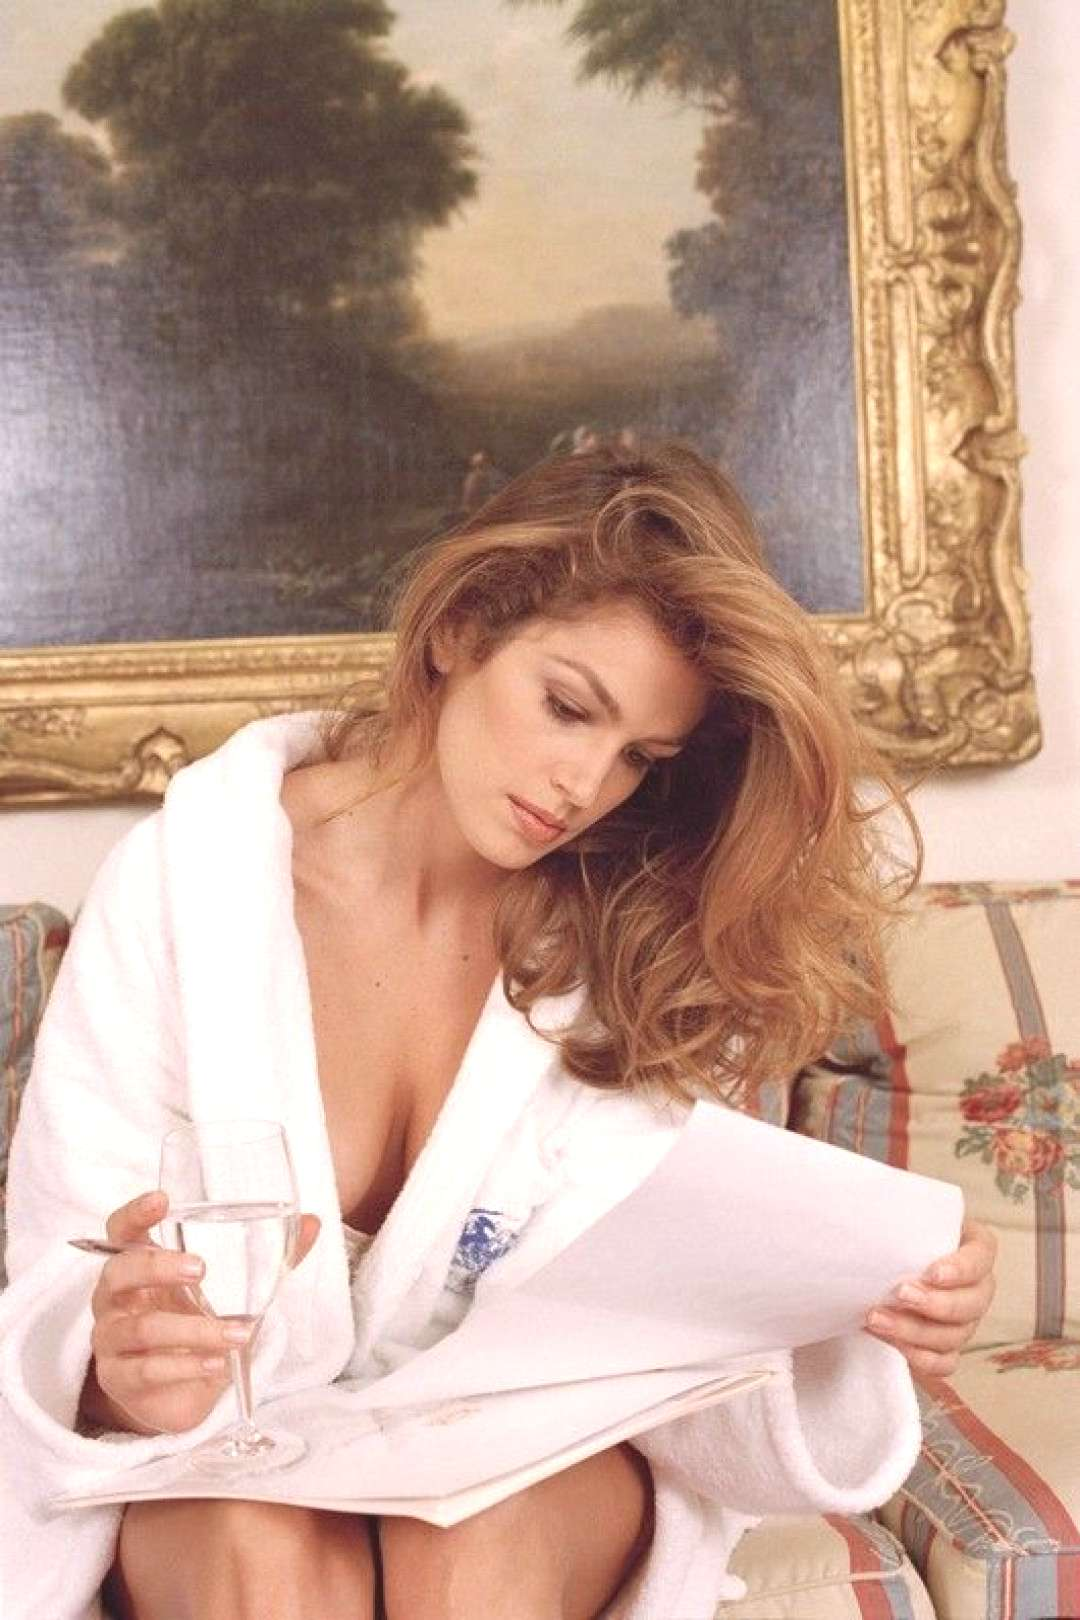 Cindy Crawford's Guide To Anti-Aging - crfashionbook